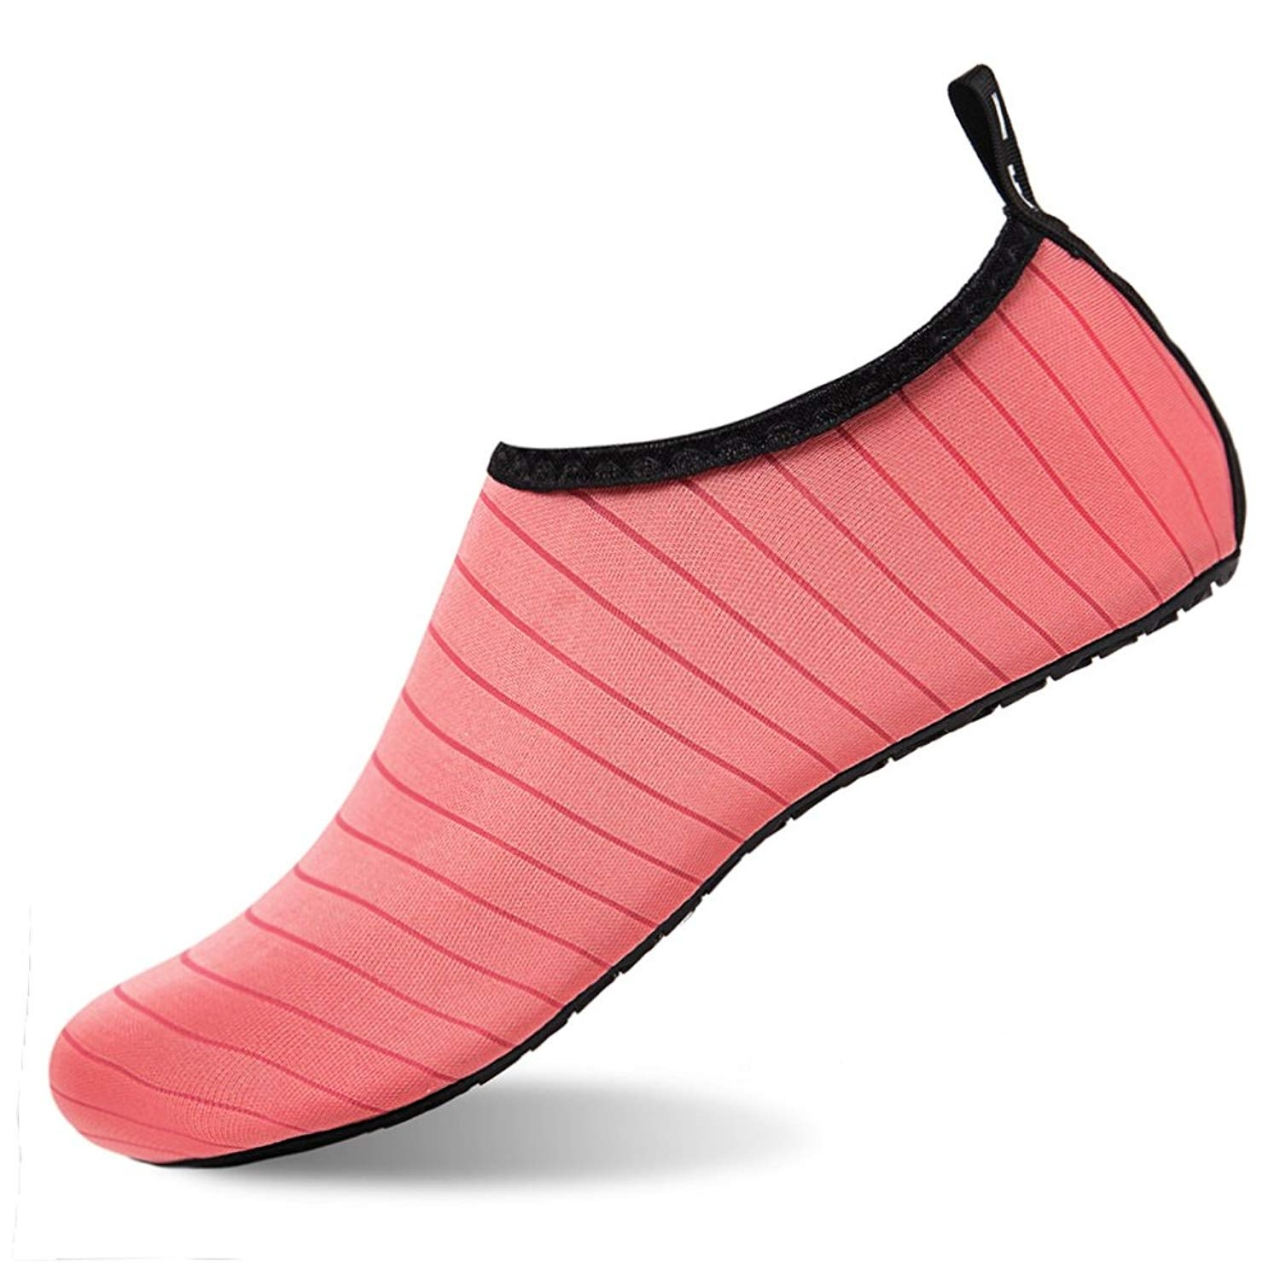 82180ffcfc2b Water Shoes Barefoot Quick-Dry Aqua Socks for Beach Swim Surf Yoga Exercise  for Women and Men tw.pink 40 41  Product No  1609617. Item specifics  Brand